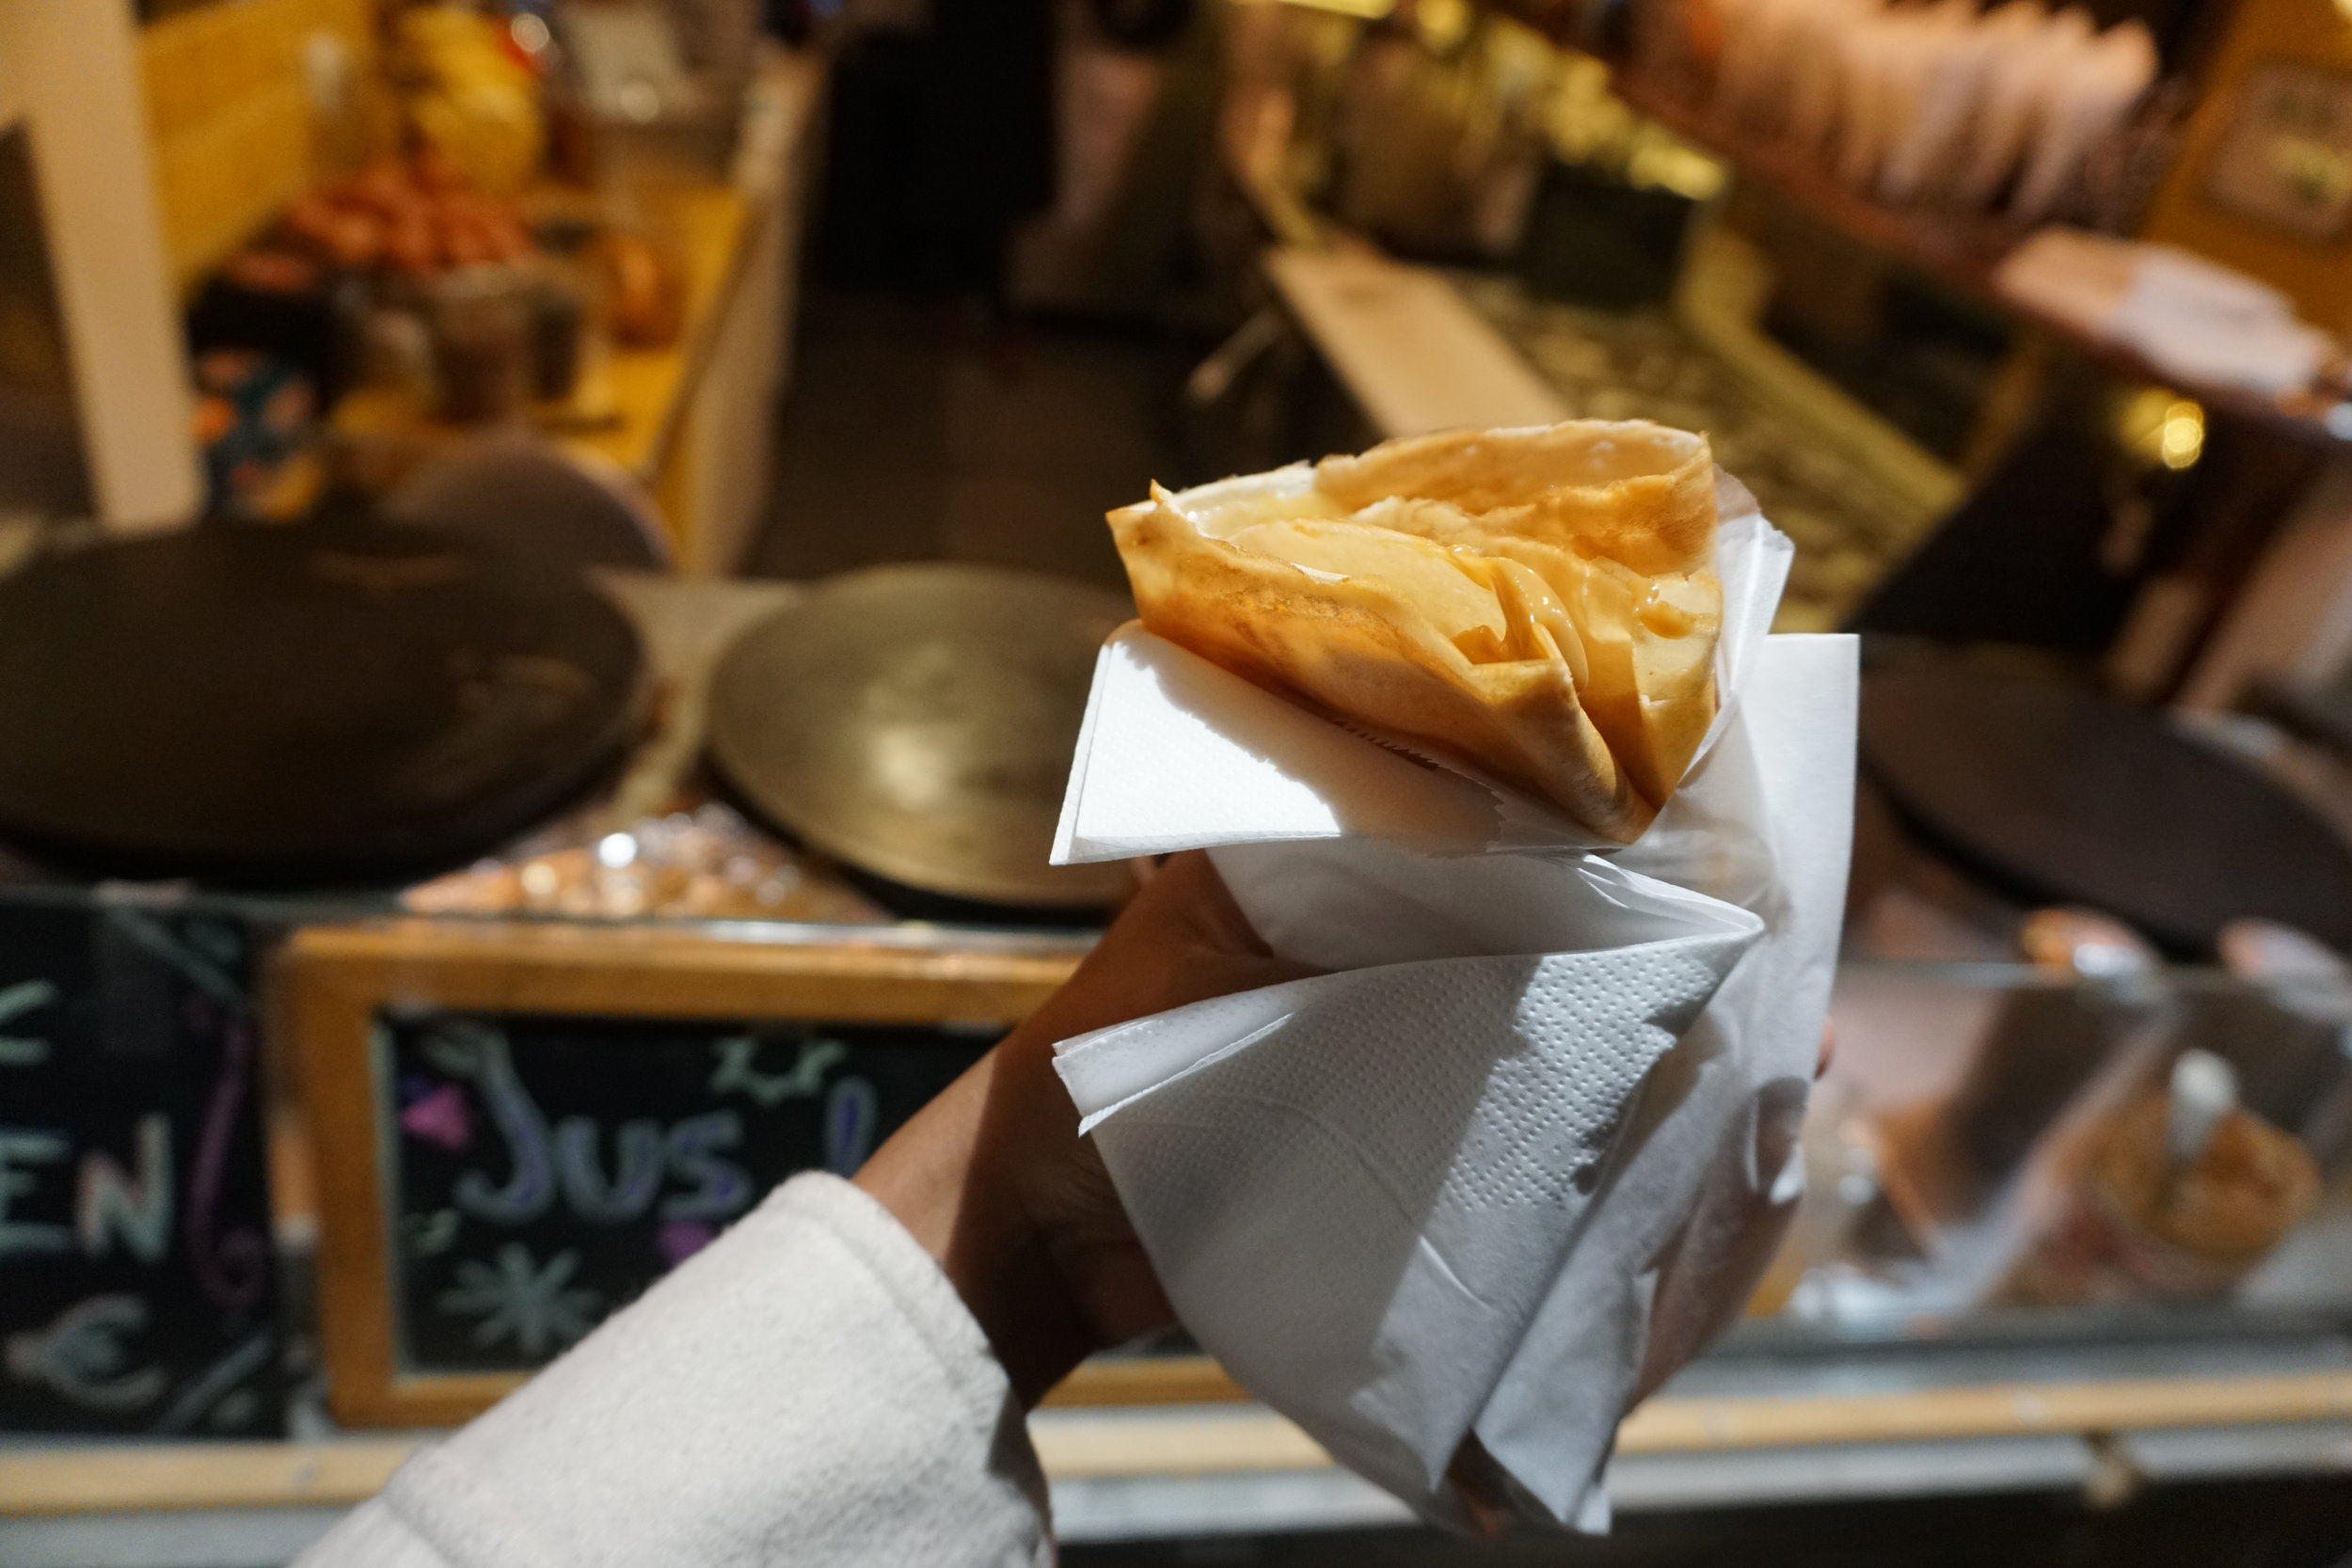 Enjoy the cuisine - Crepes, Wine, and small eateries